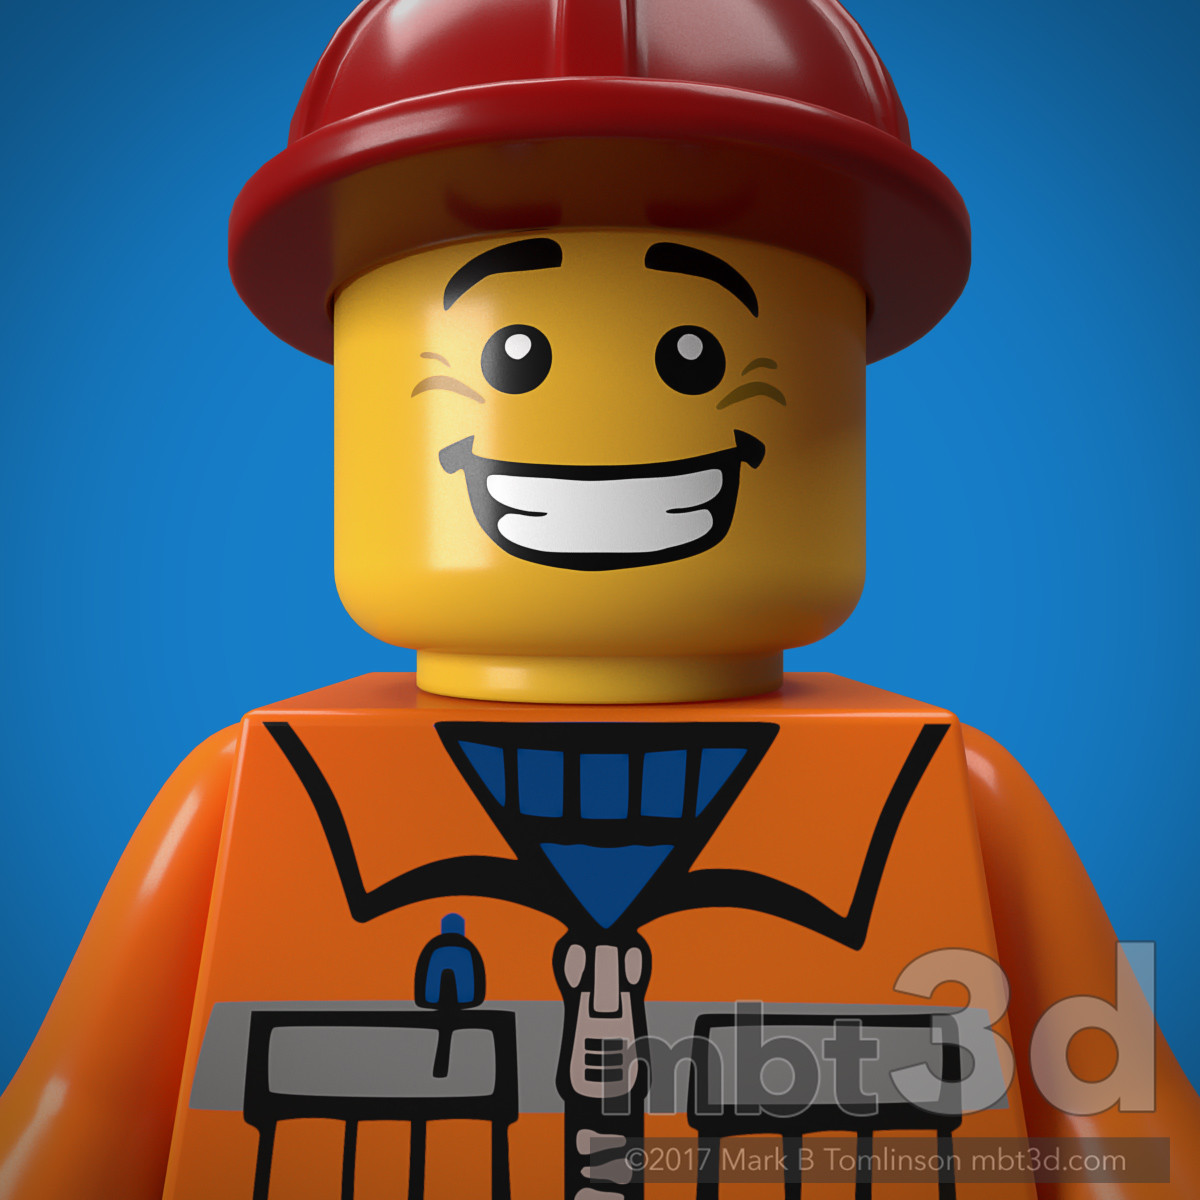 Construction Work Minifigure LEGO Minifigure